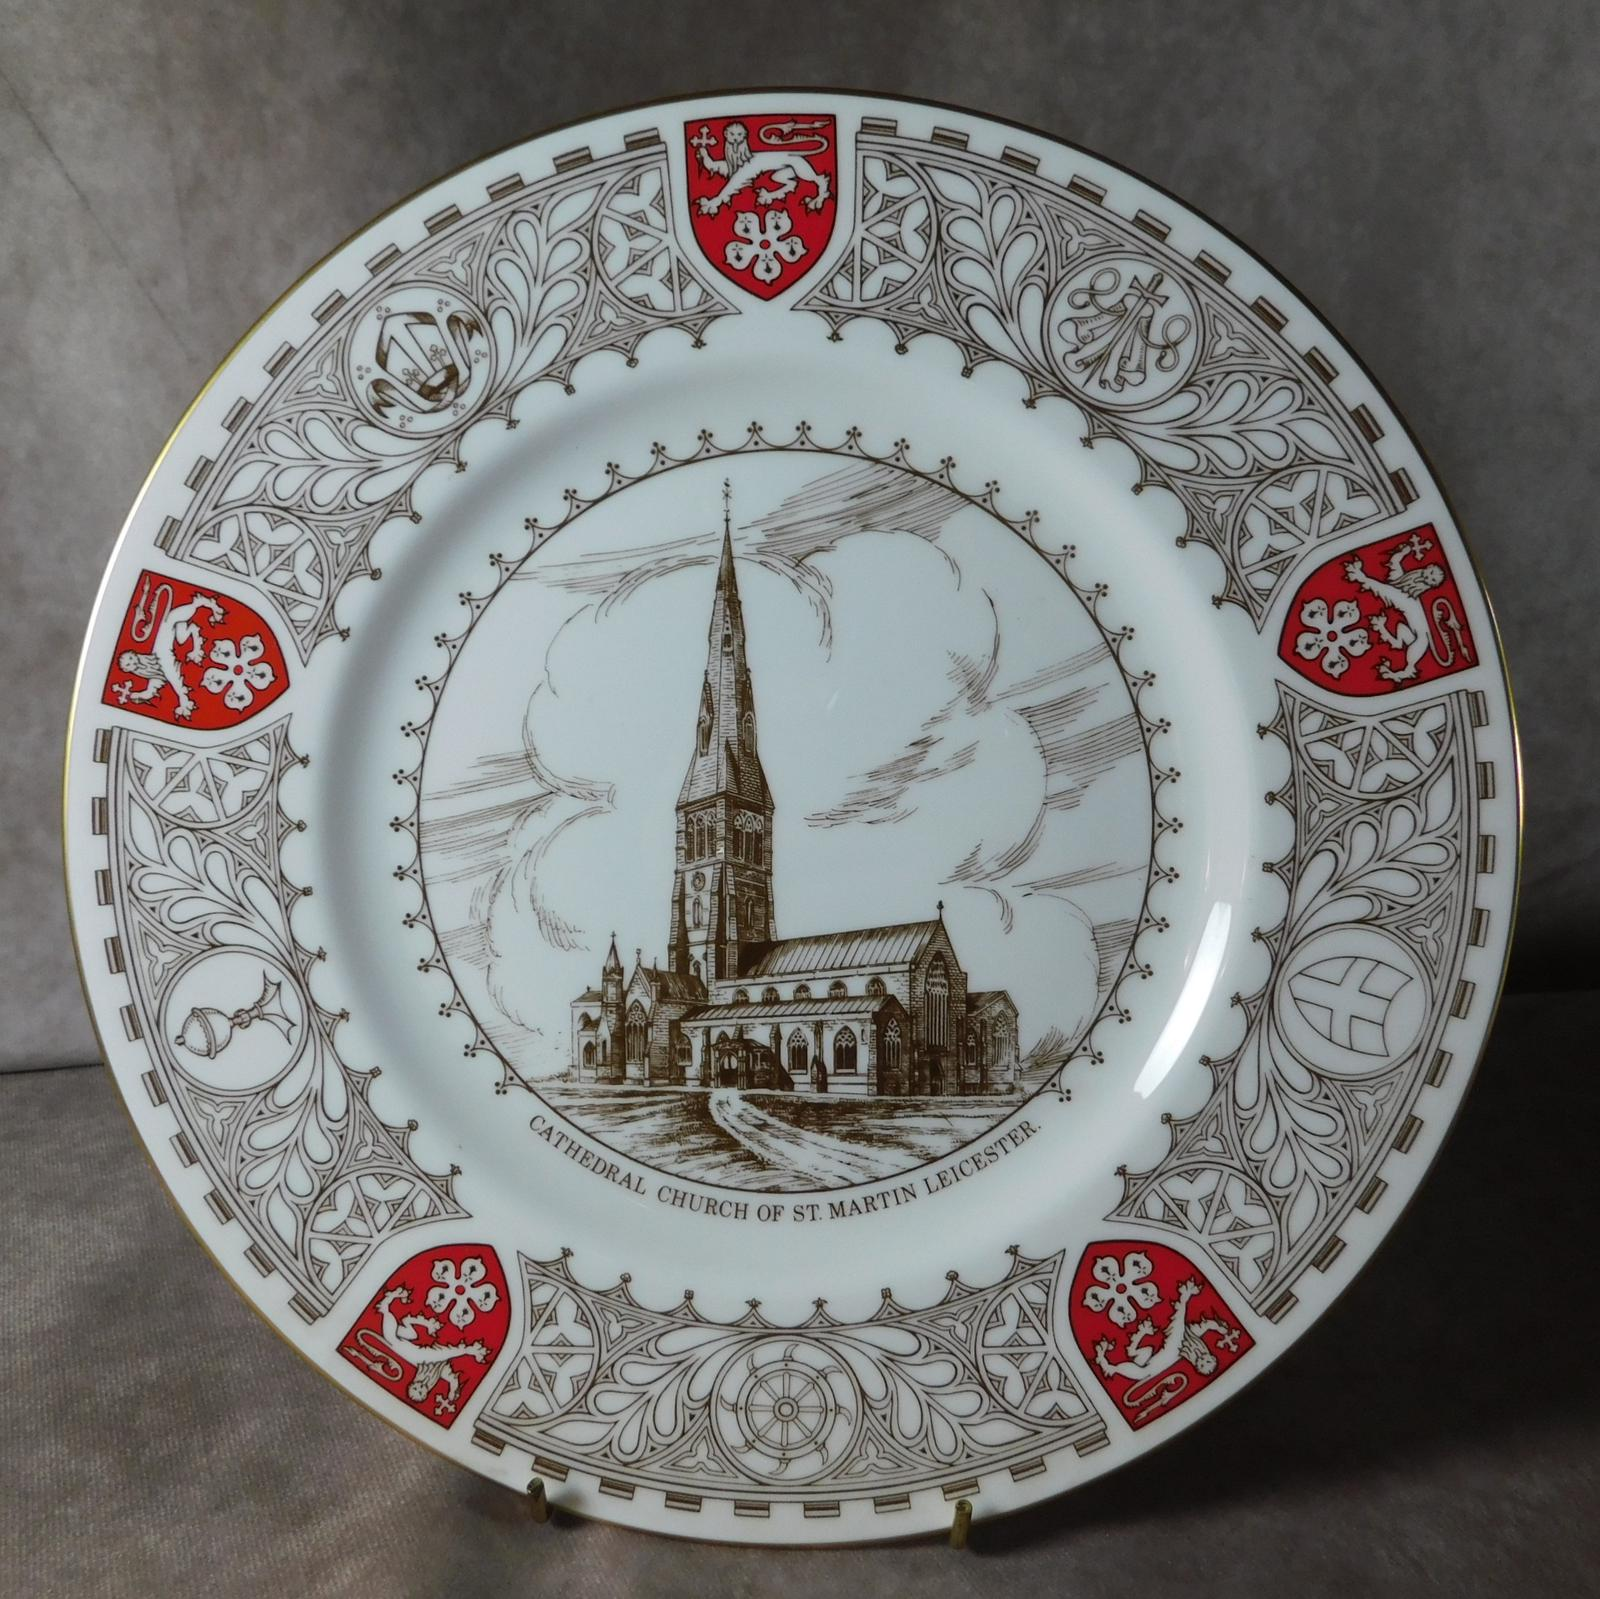 St Martin Leicester Golden Jubilee Plate by Coalport Plate (1 of 1)